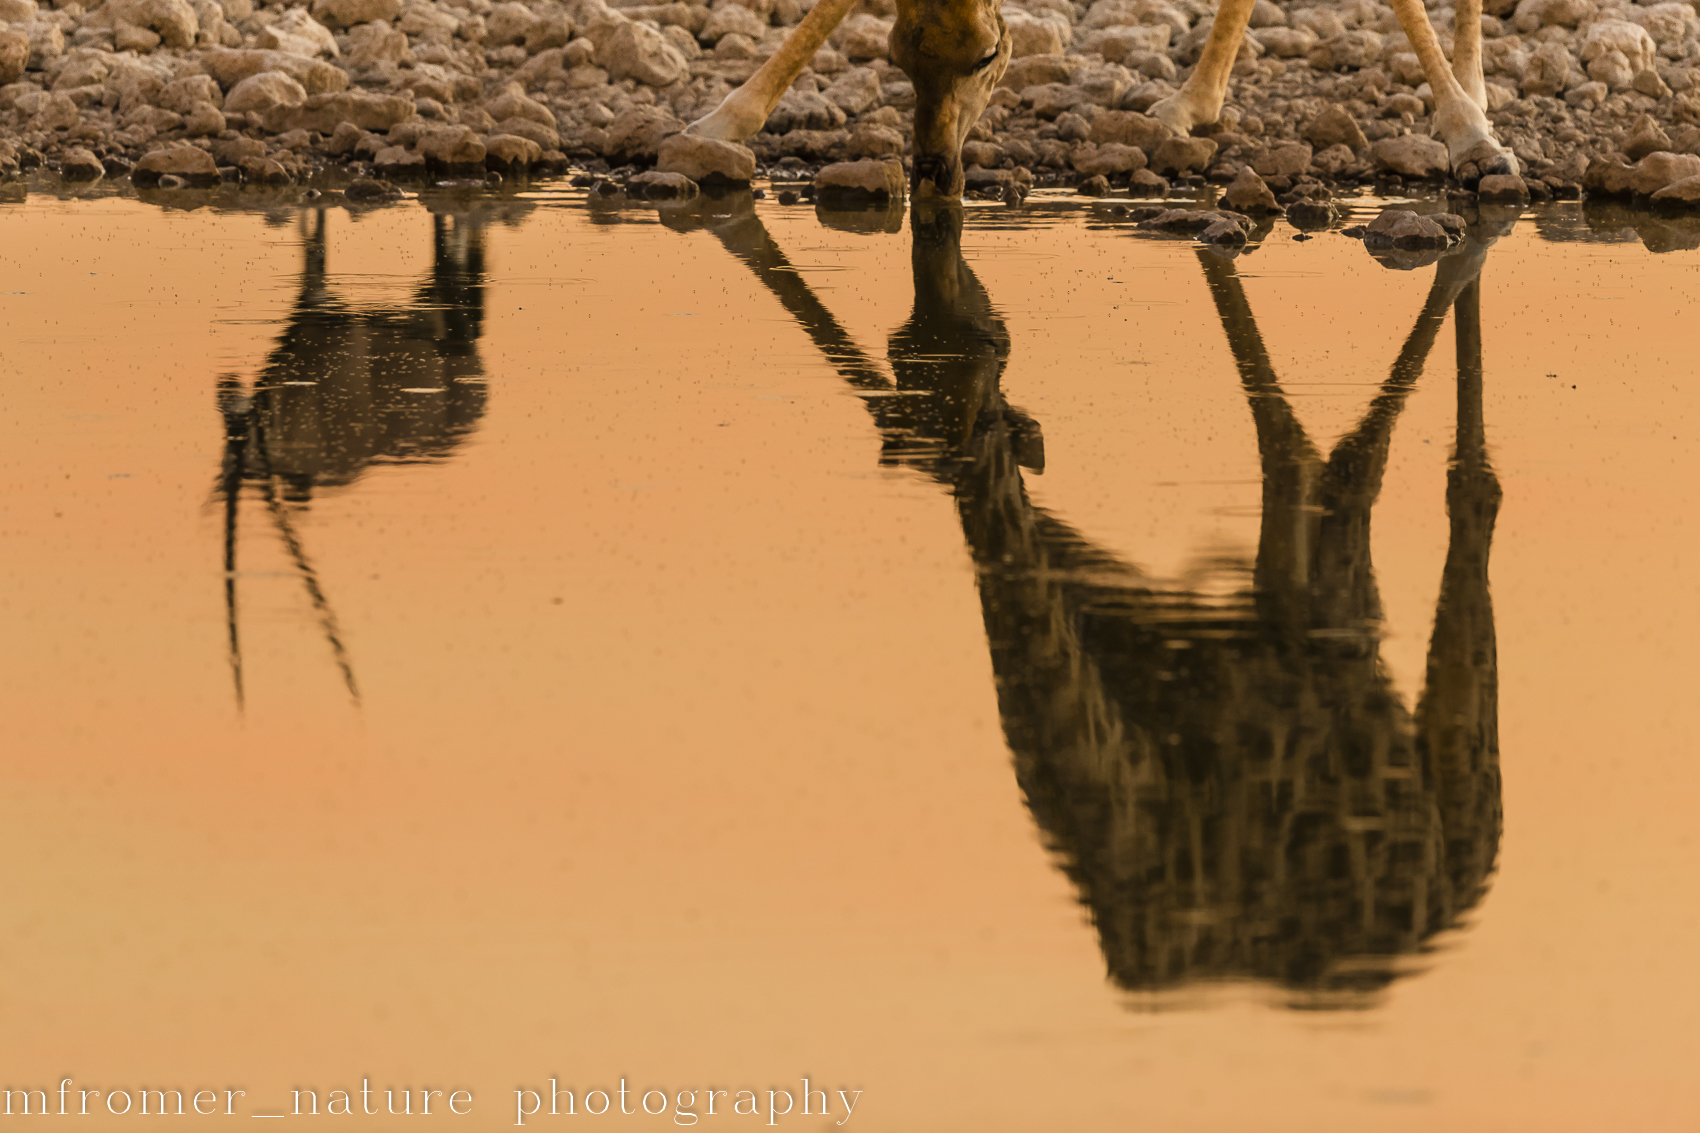 Reflection of oryx and giraffe